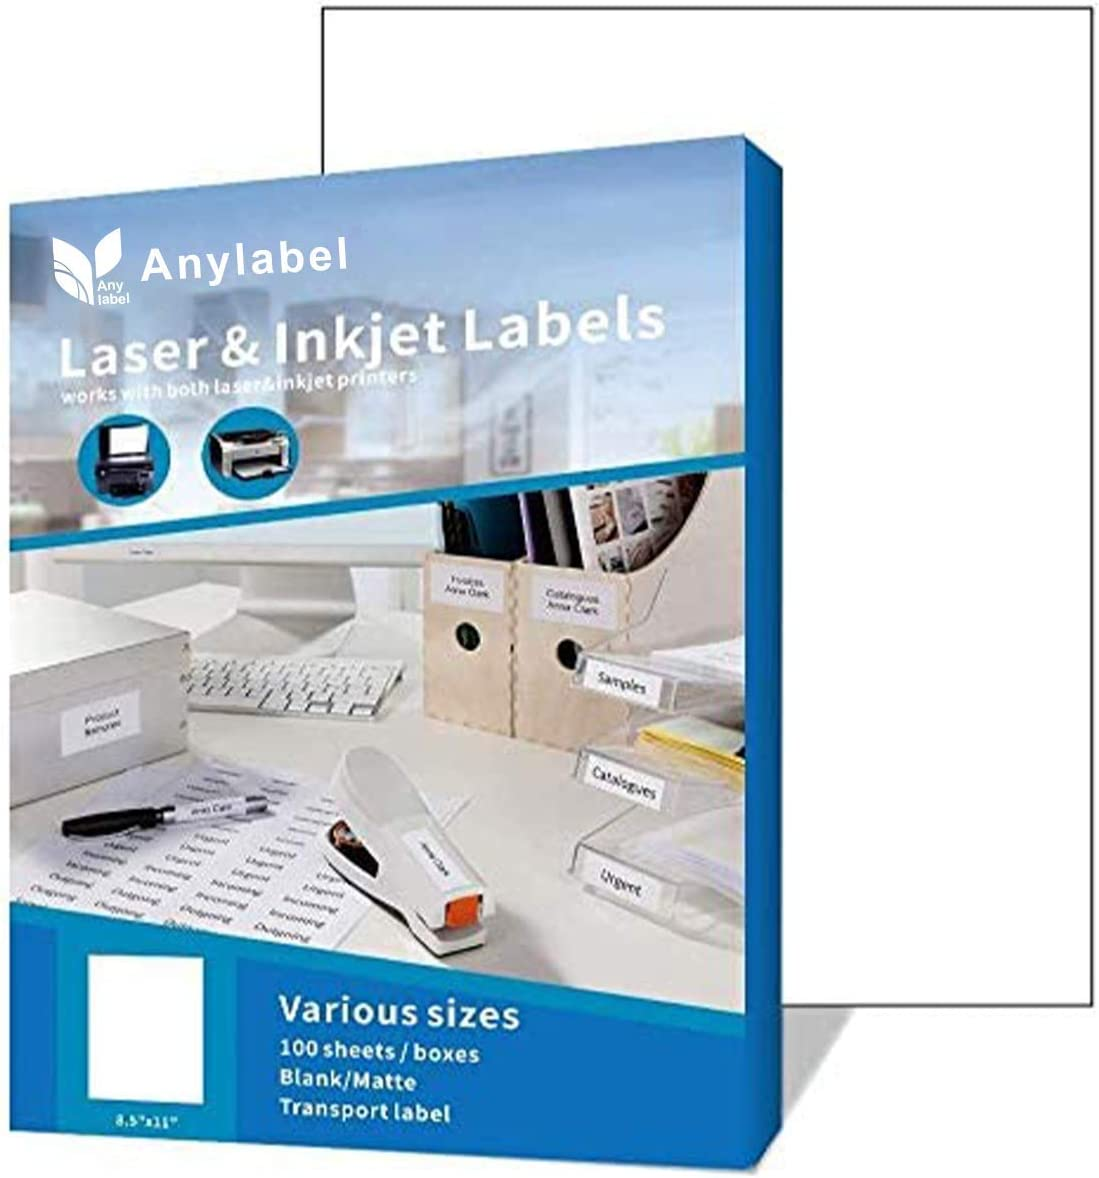 Anylabel Full Sheet Easy Peel Shipping Address Labels for Laser/Ink Jet Printer Permanent Adhesive (100 Sheets, 100 Labels)